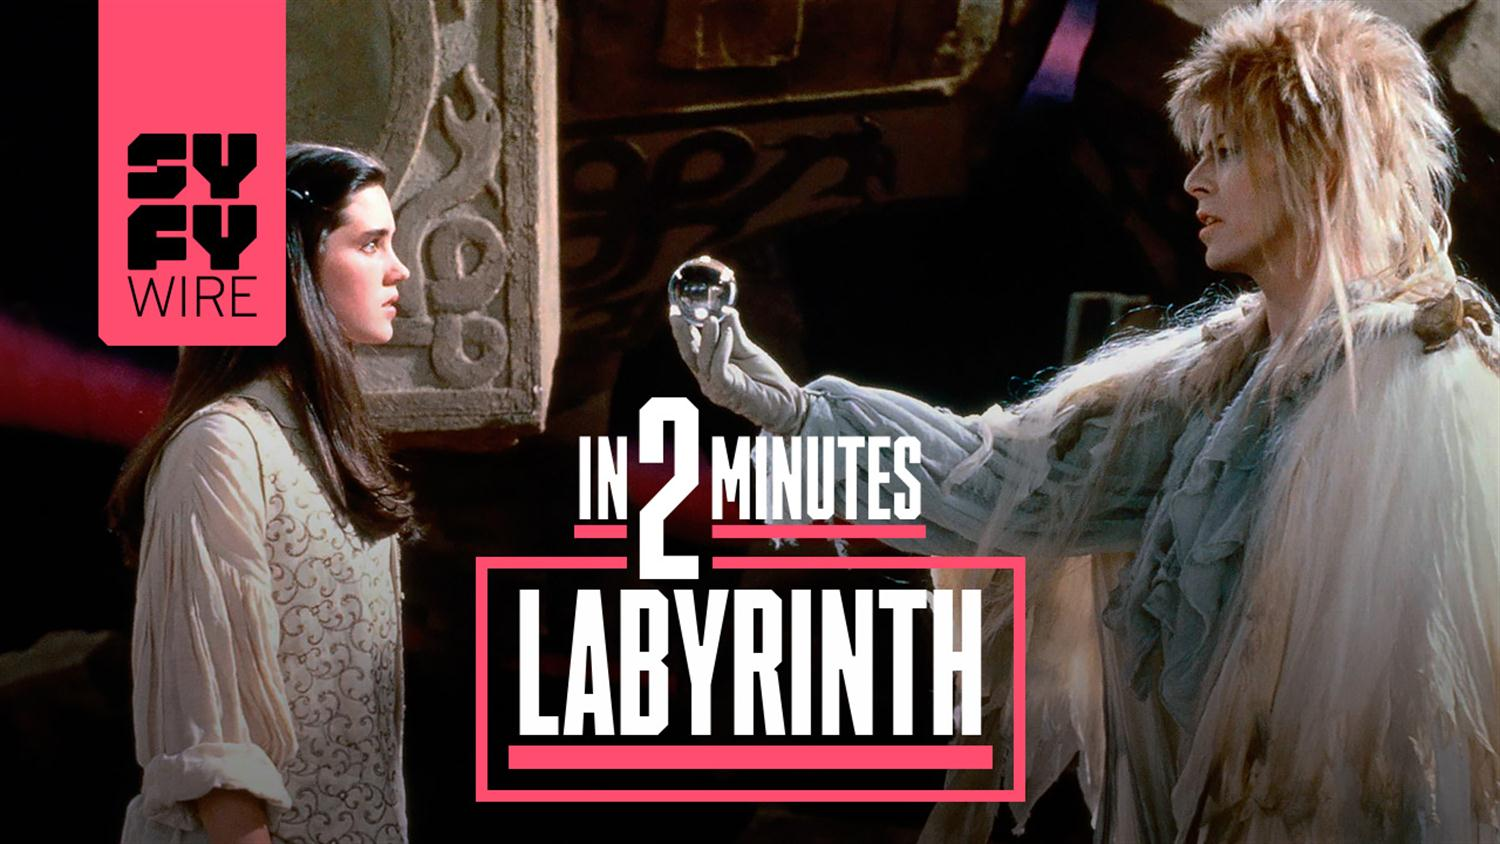 Labyrinth in 2 Minutes